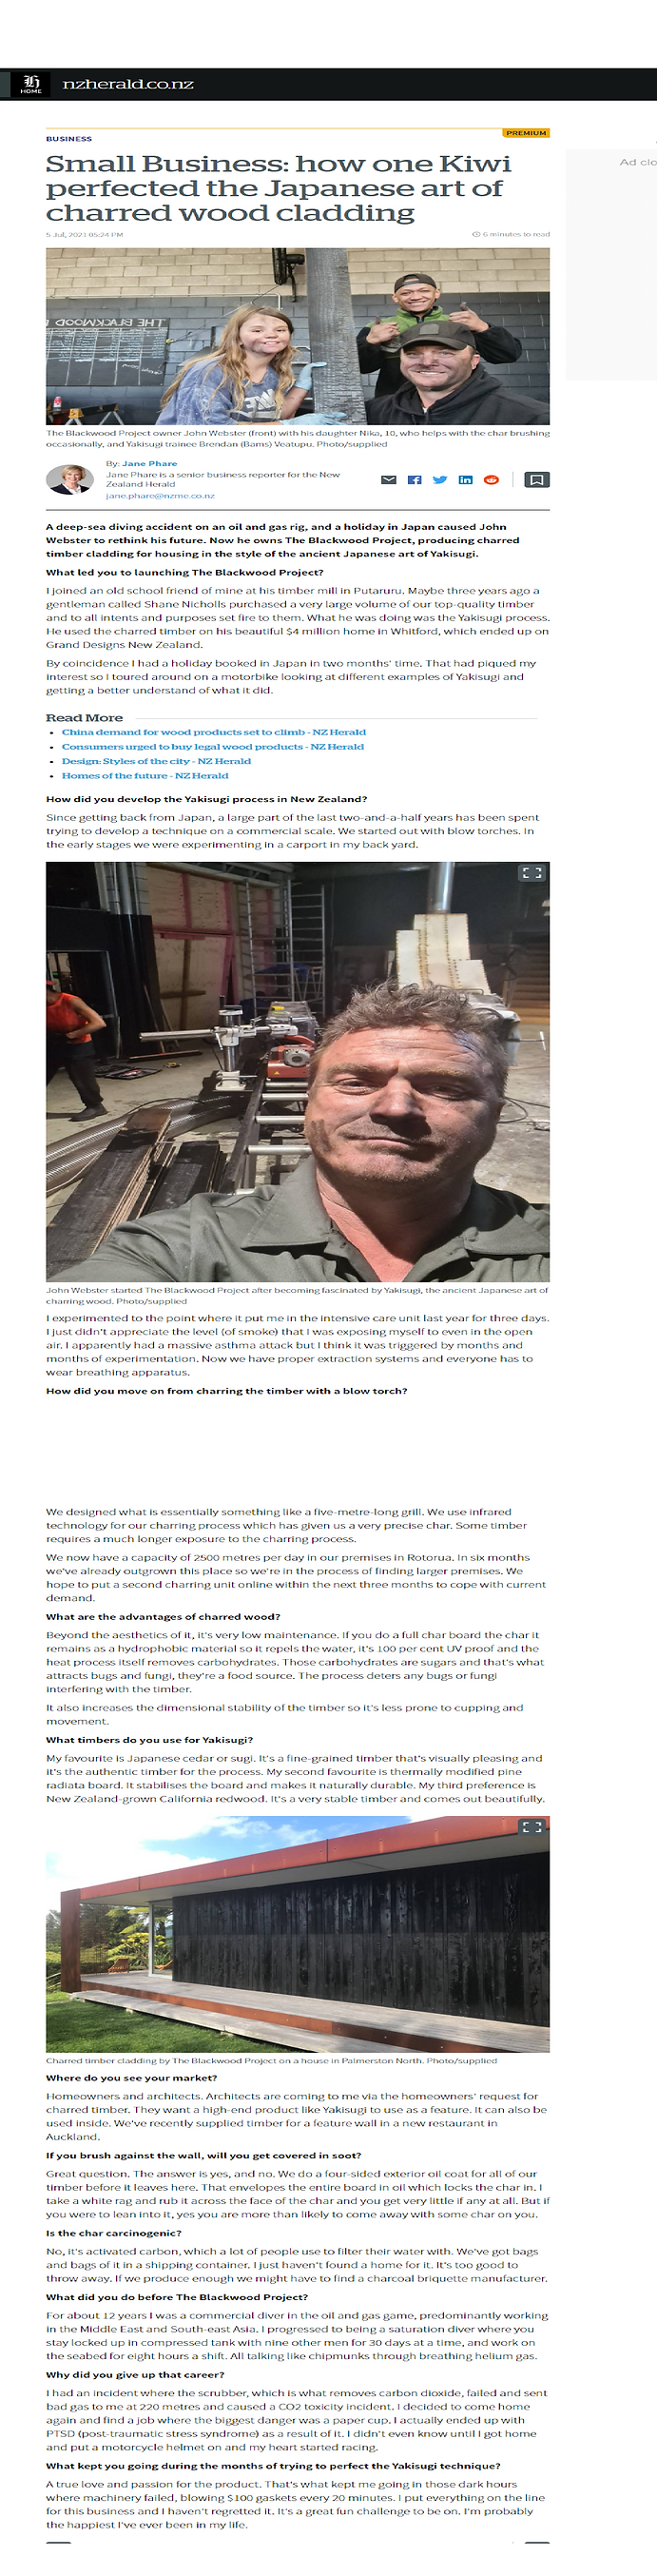 screencapture-nzherald-co-nz-business-small-business-how-one-kiwi-perfected-the-japanese-a